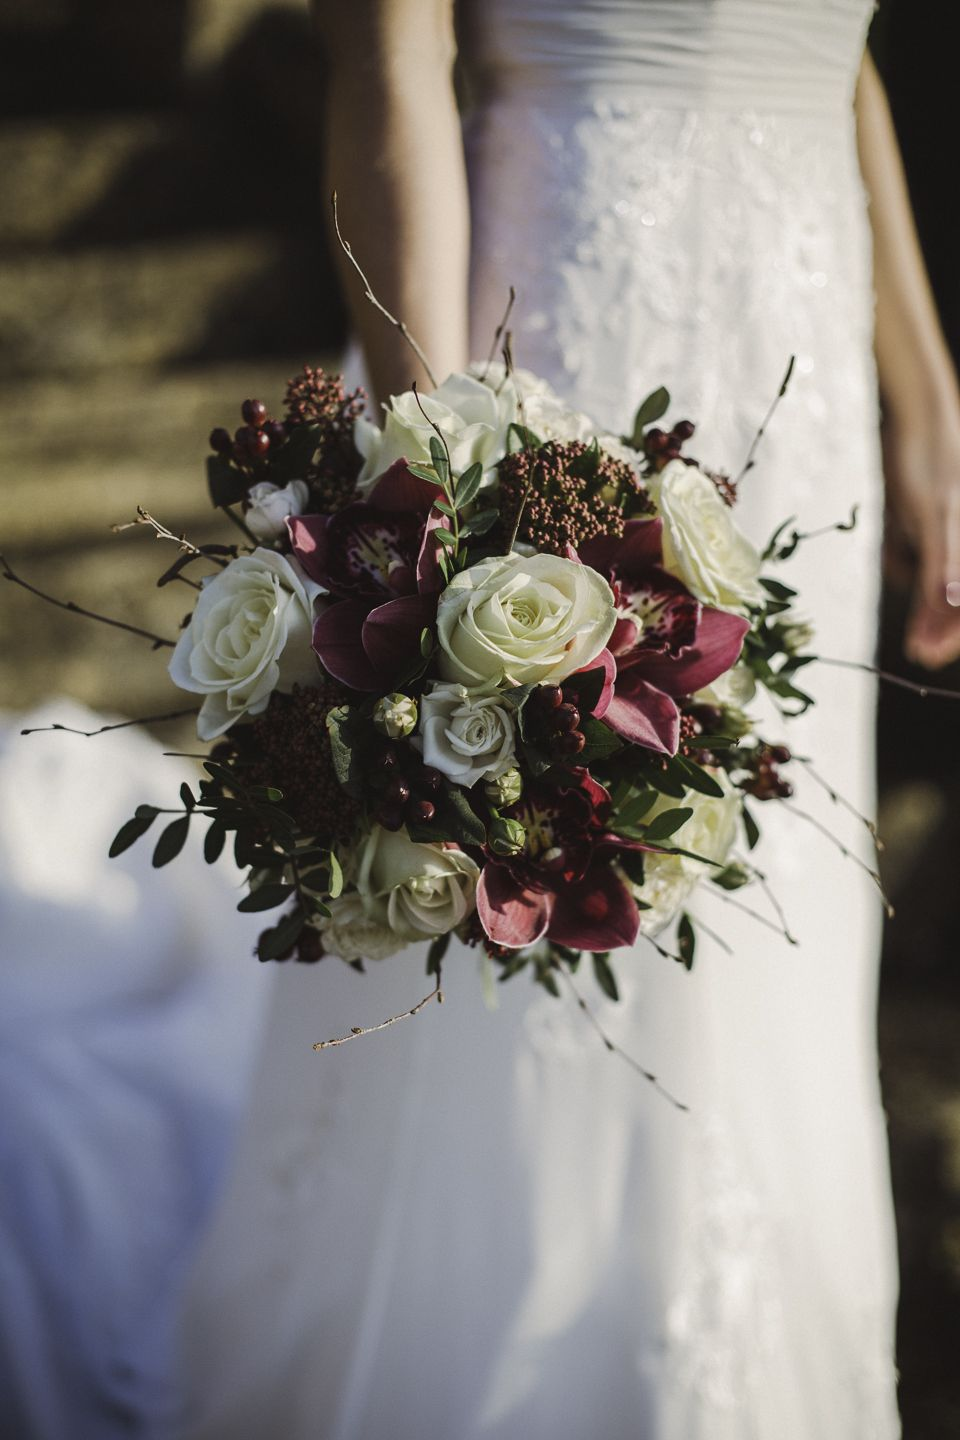 1940's style wedding bouquets  A us Inspired Elegant Autumn Wedding in the Cotswolds